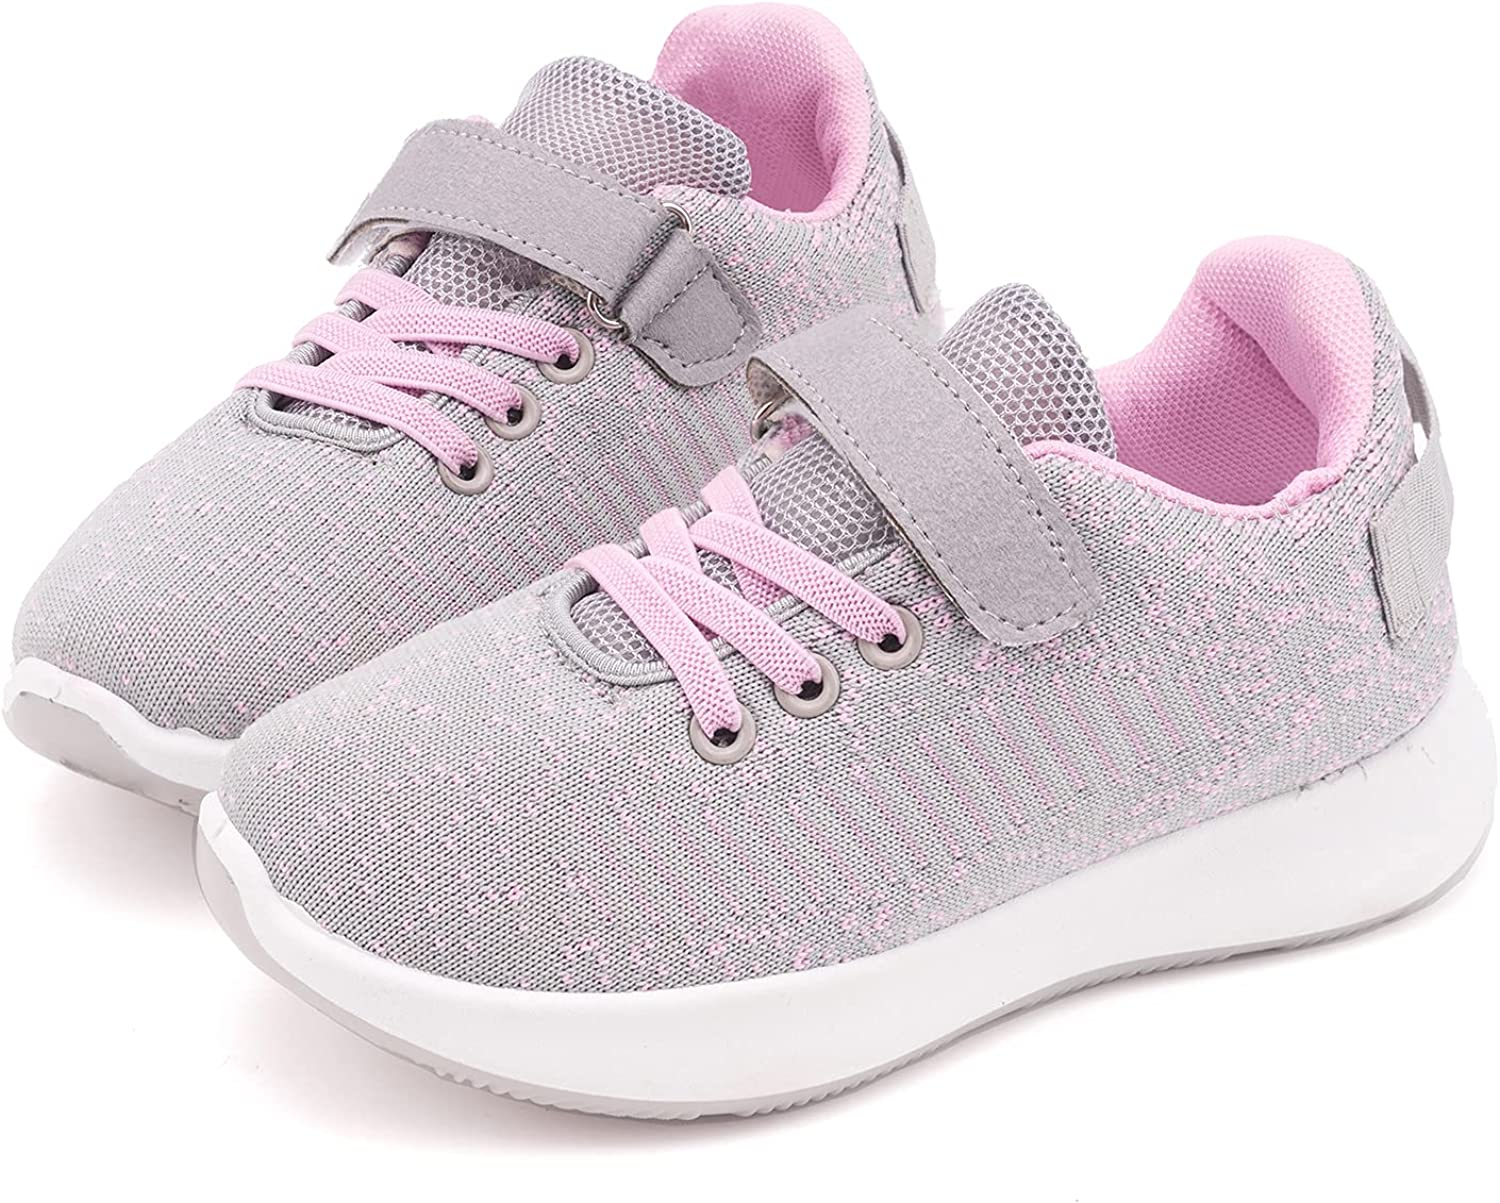 Toandon Toddler Kids Knit Award Breathable Sport Athletic for Sneakers New product type